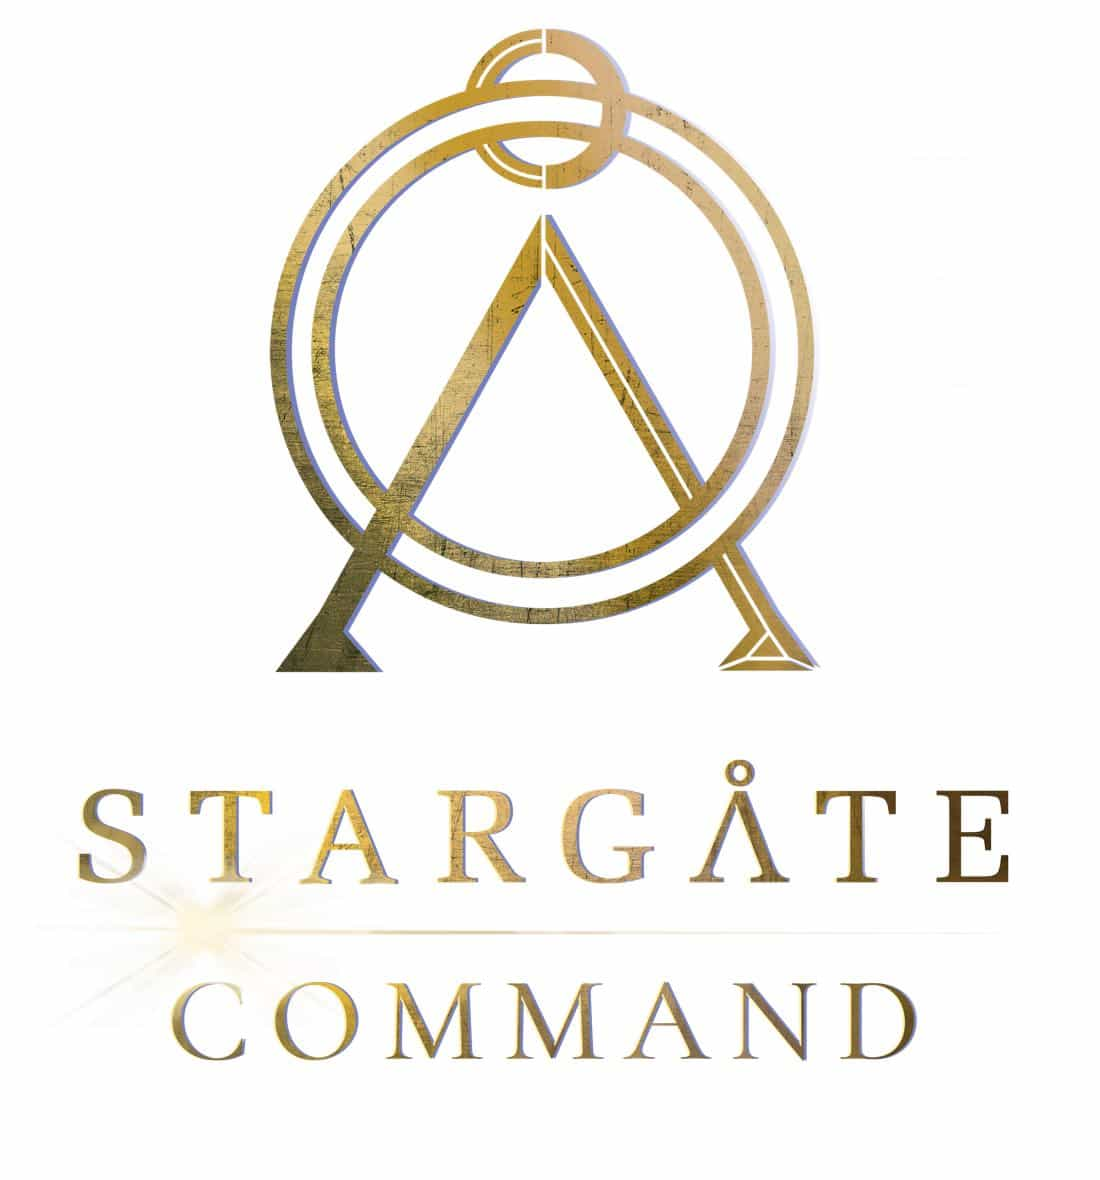 Stargate Command gold stacked